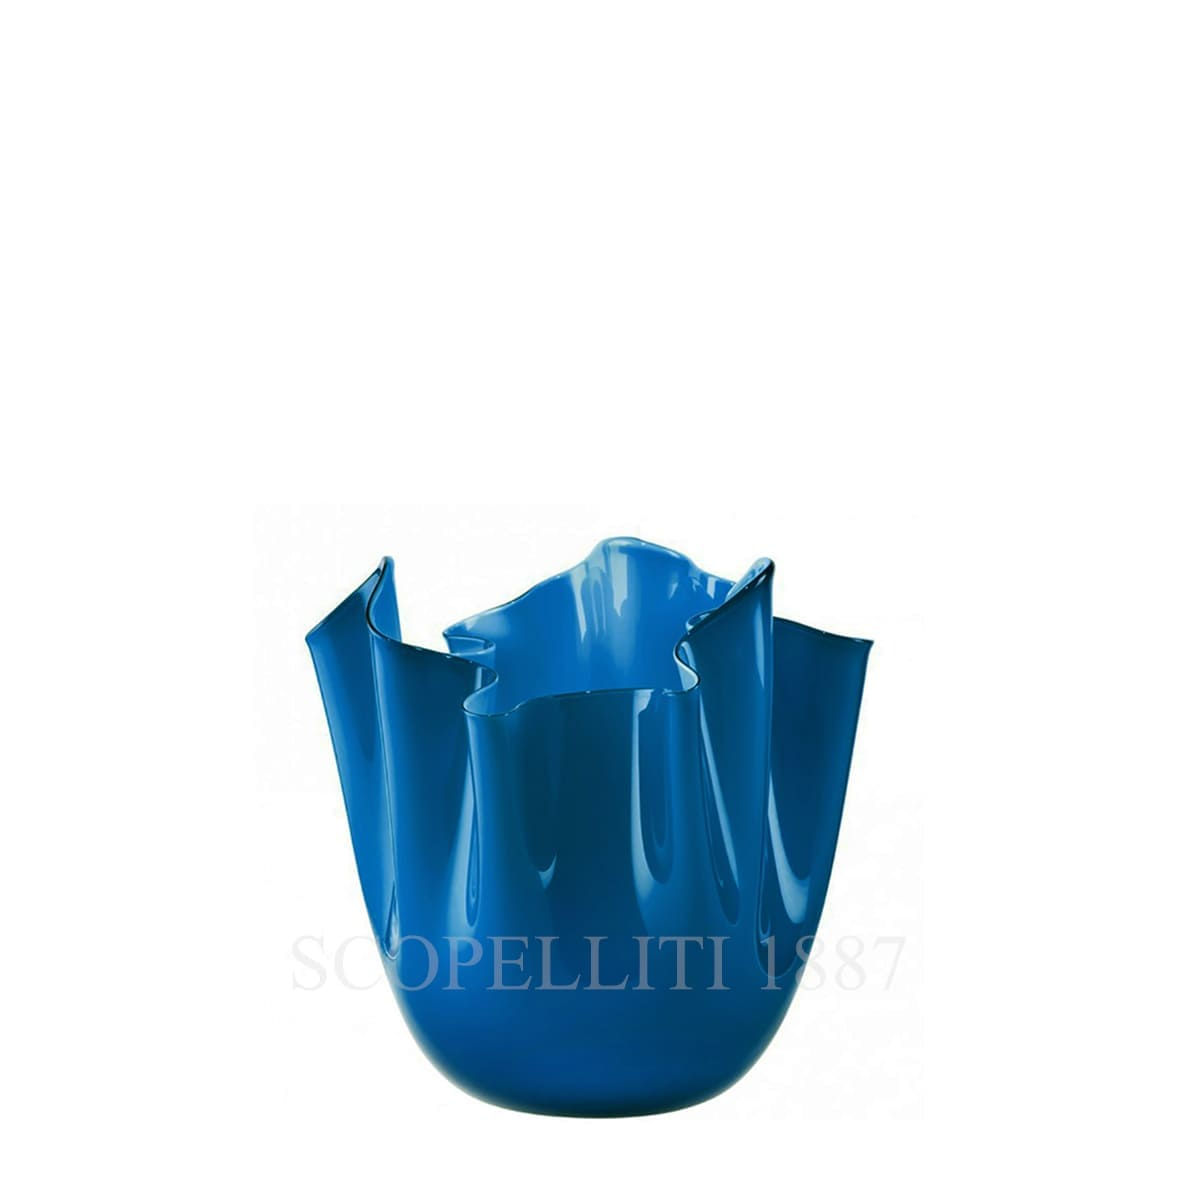 fazzoletto venini small vase blue